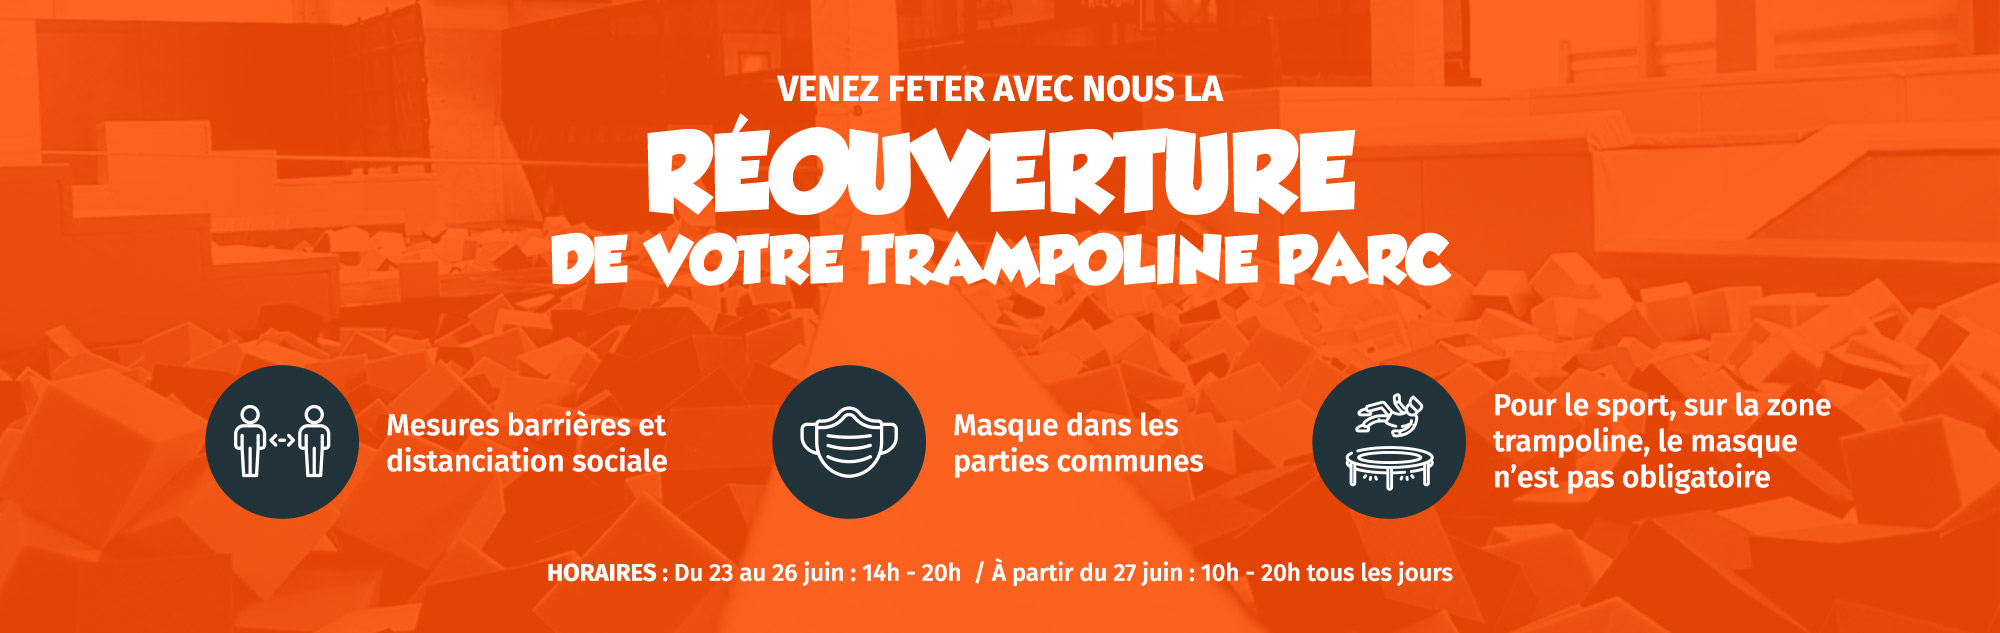 2006_TRAMPOLINE_EXPERIENCE_REOUVERTURE2